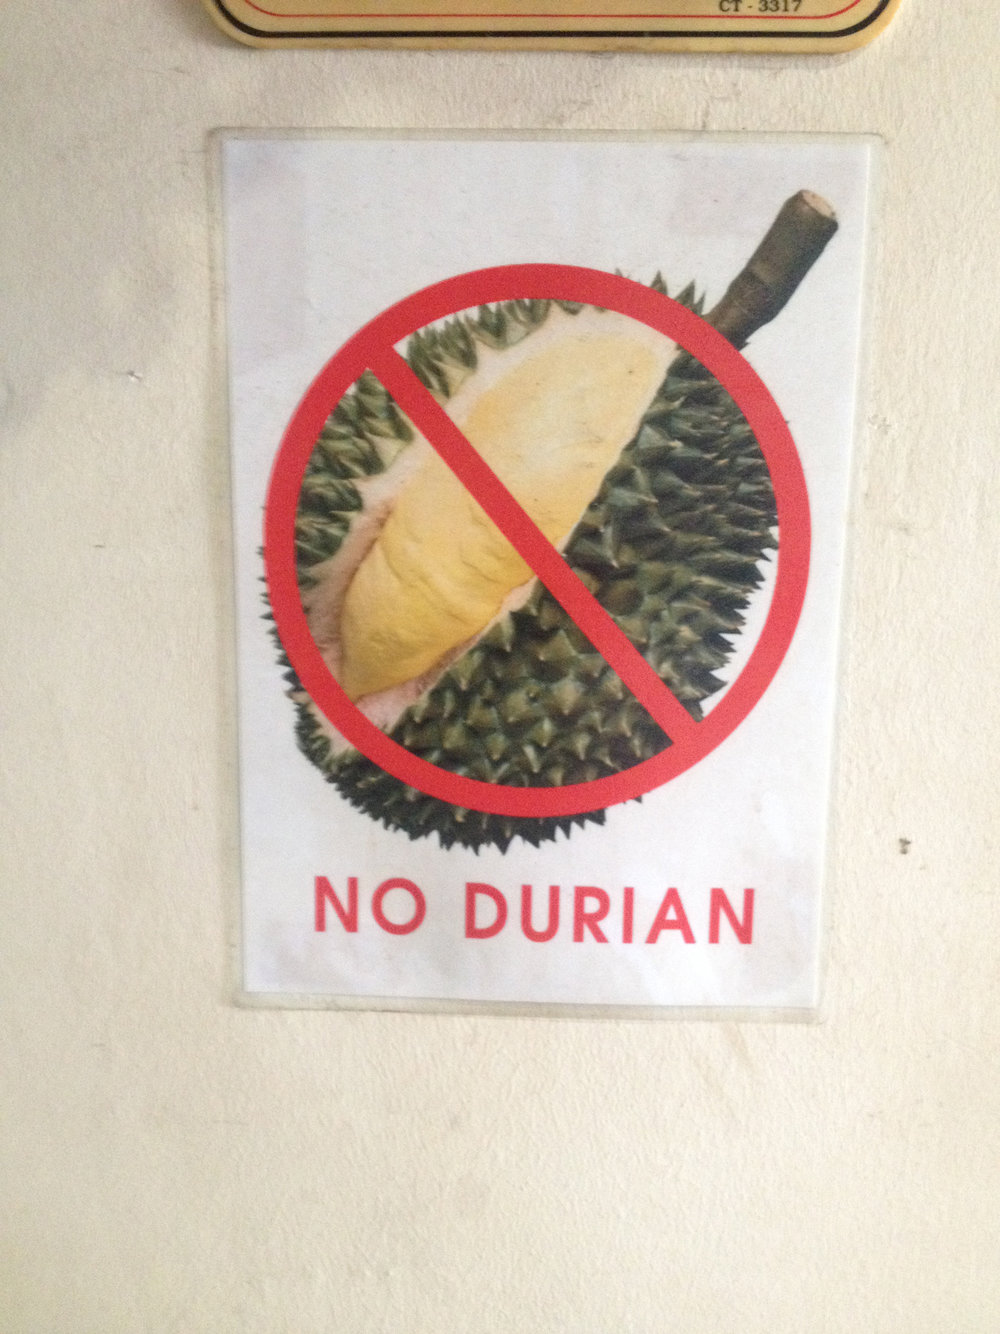 DURIAN IS A FAVORED FRUIT IN MALAYSIA, BUT SMELLS LIKE ROTTING GARBAGE...LITERALLY SO THESE SIGNS WERE POPULAR IN BUSINESS AND TRANSPORTATION.